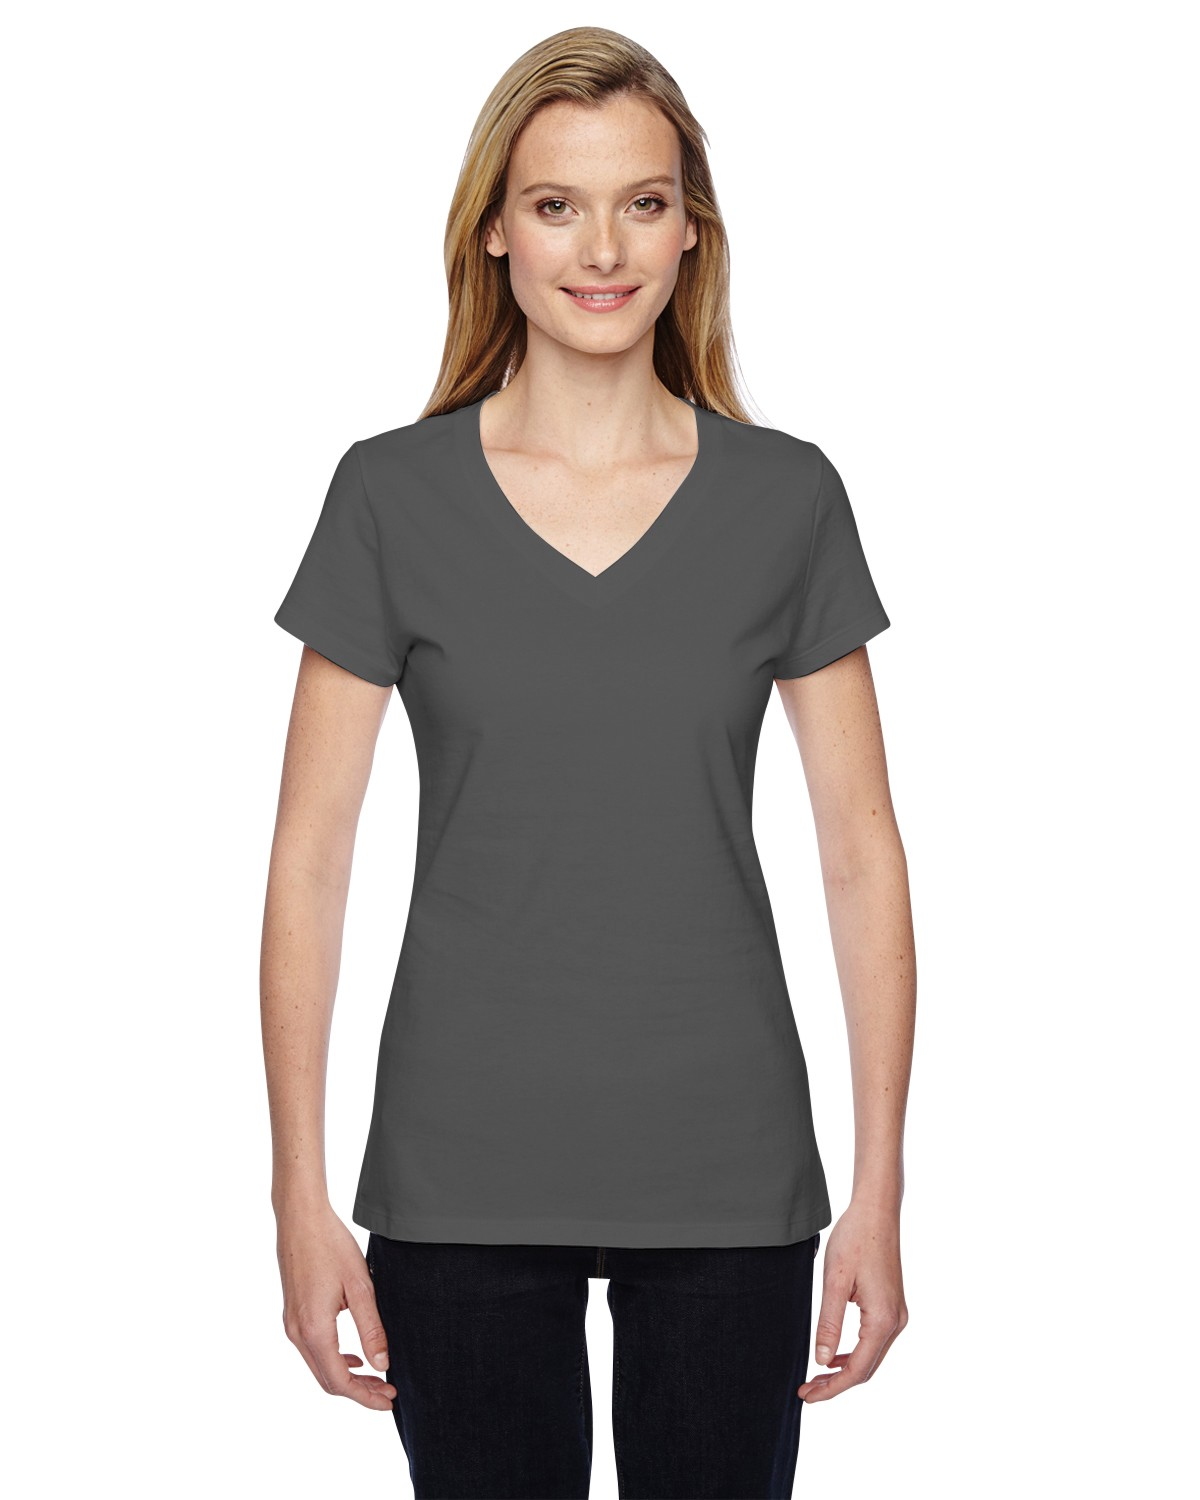 SFJVR Fruit of the Loom CHARCOAL GREY